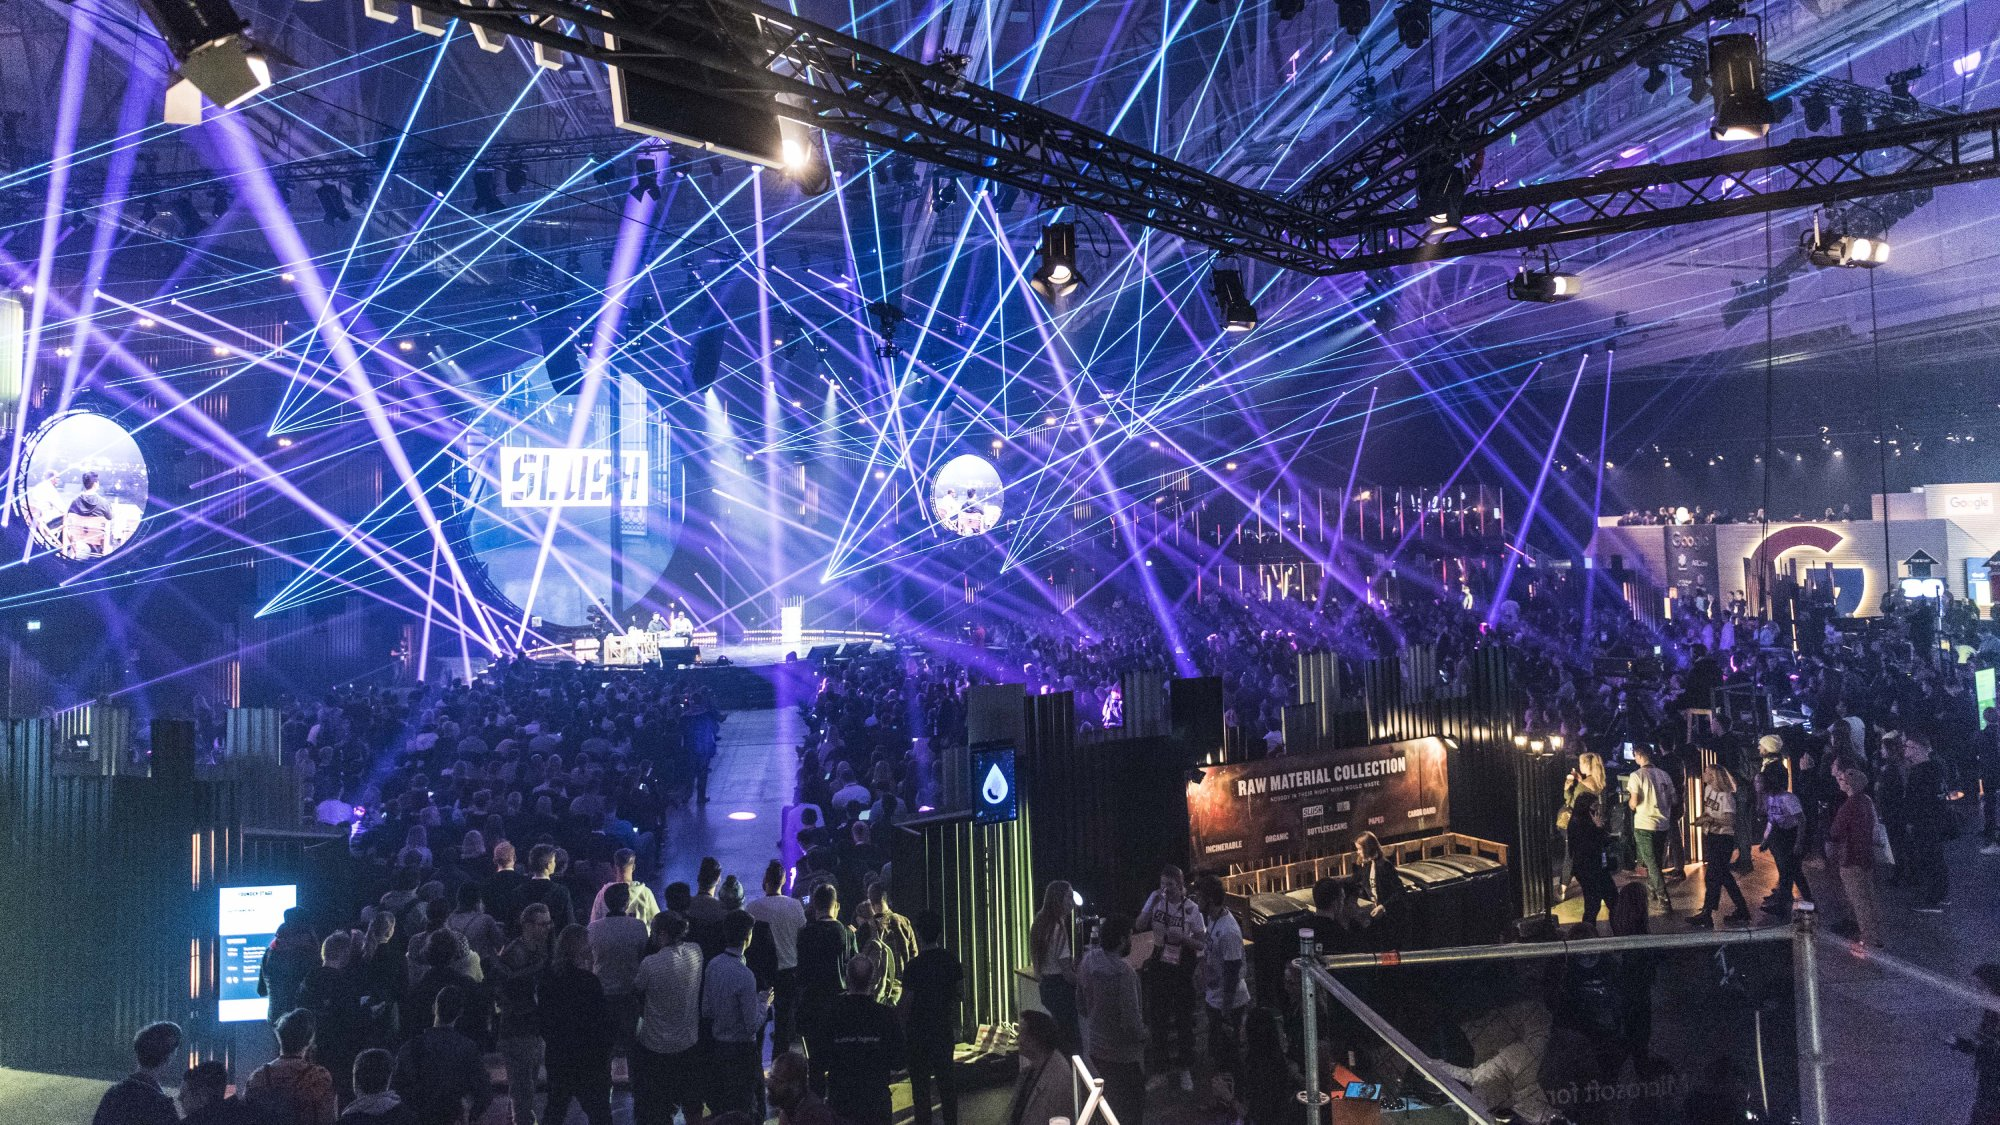 Attendees at Slush 2017.